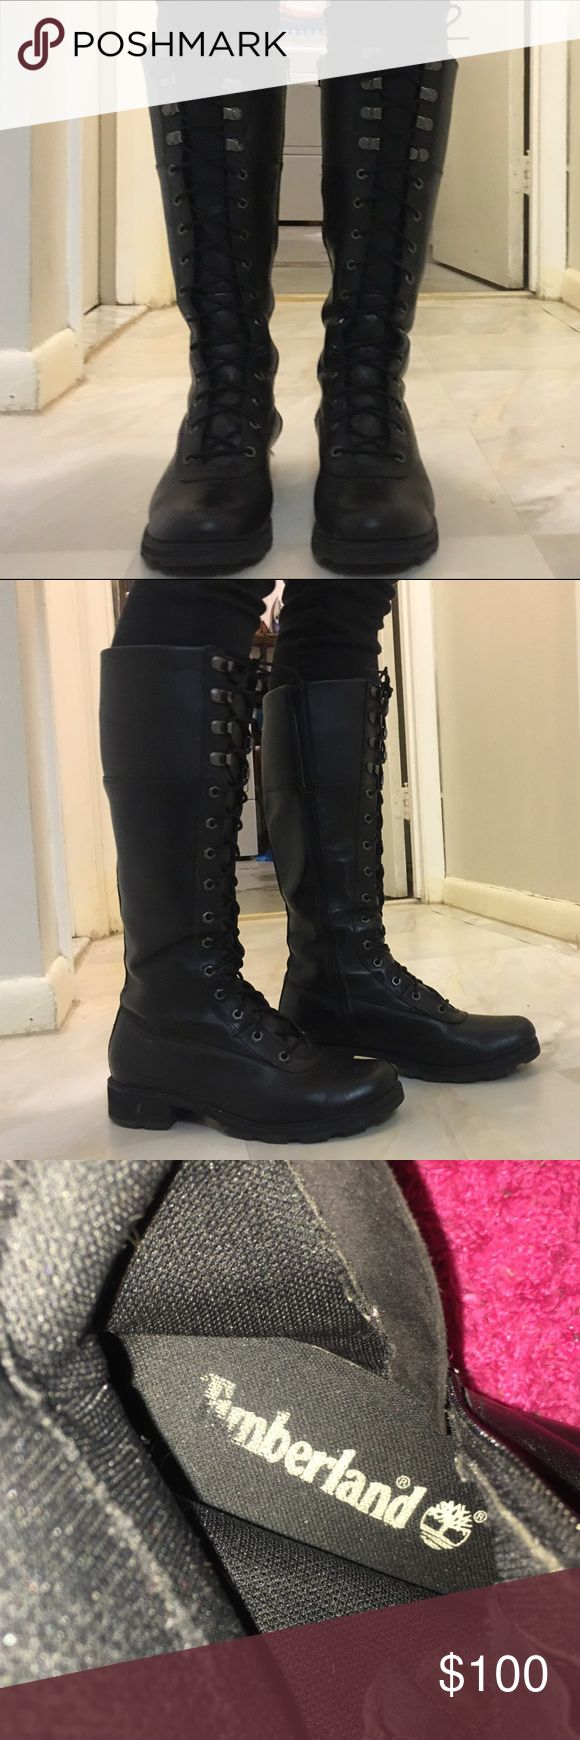 Timberland Boots Knee high boots, In great condition, Waterproof, Combat boot style                                                                                                  💰Will consider official offers  📬 Fast shipping  🏡 Smoke & pet free home  📦 Bundle to save 10%  💕 Share for share  🙋🏻 Questions welcomed! Timberland Shoes Lace Up Boots